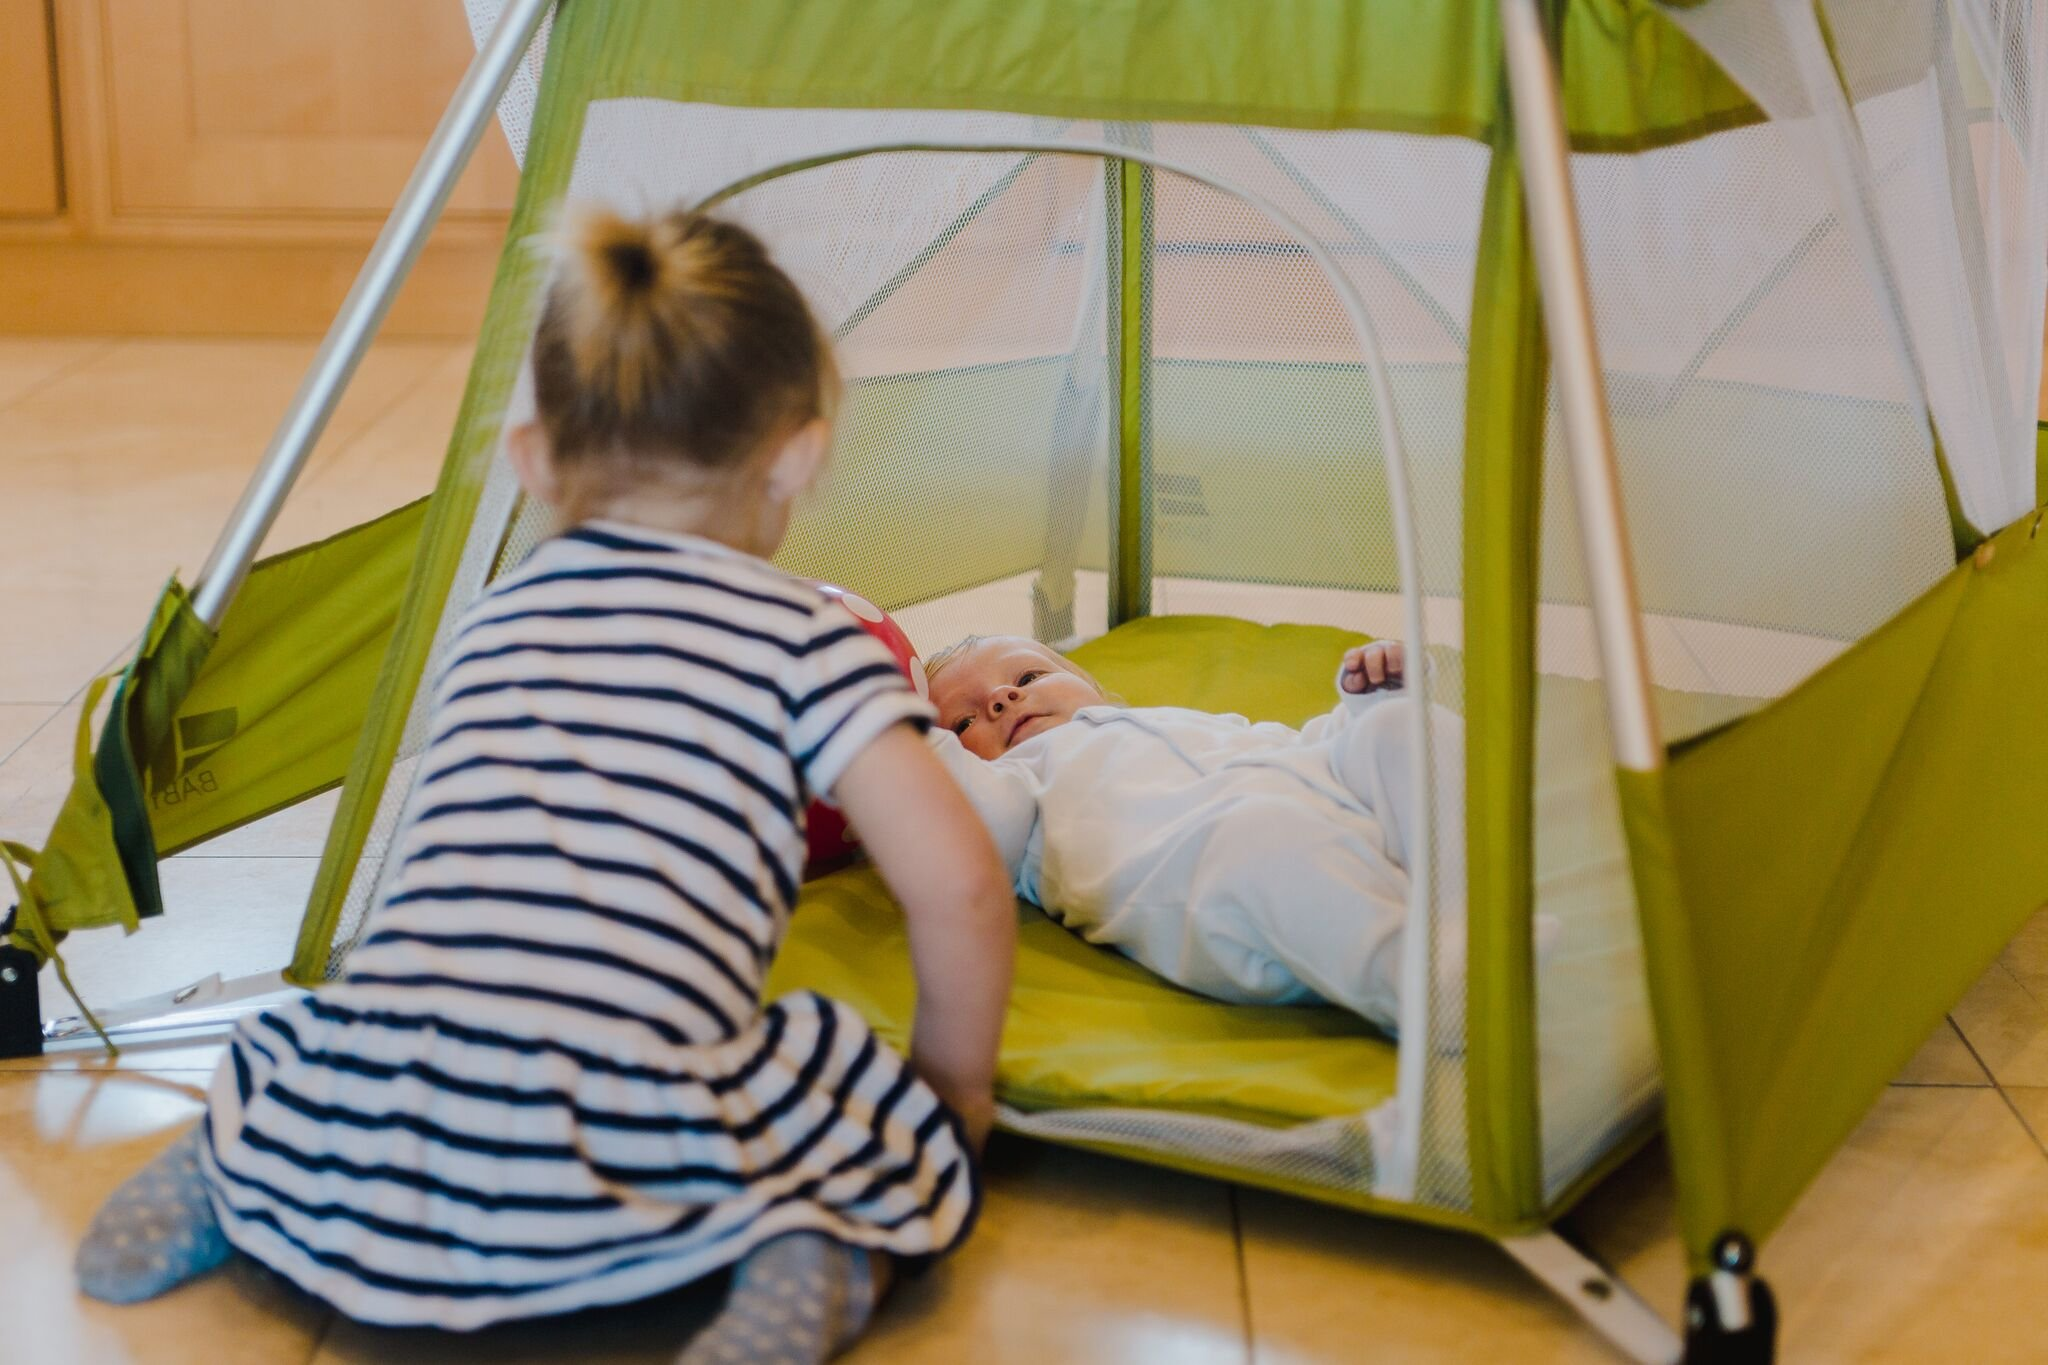 BabyHub SleepSpace Travel Cot with Mosquito Net, Green BabyHub Three cots in one; use as a travel cot, mosquito proof space and reuse as a play tepee Includes cotton canvas tepee cover Can be set up and moved even while holding a baby. Dimensions Open - L 116cm x W 960cm x H 122cm (when opened). Dimensions Closed - 83cm H x 22cm x 42cm (in bag) 7